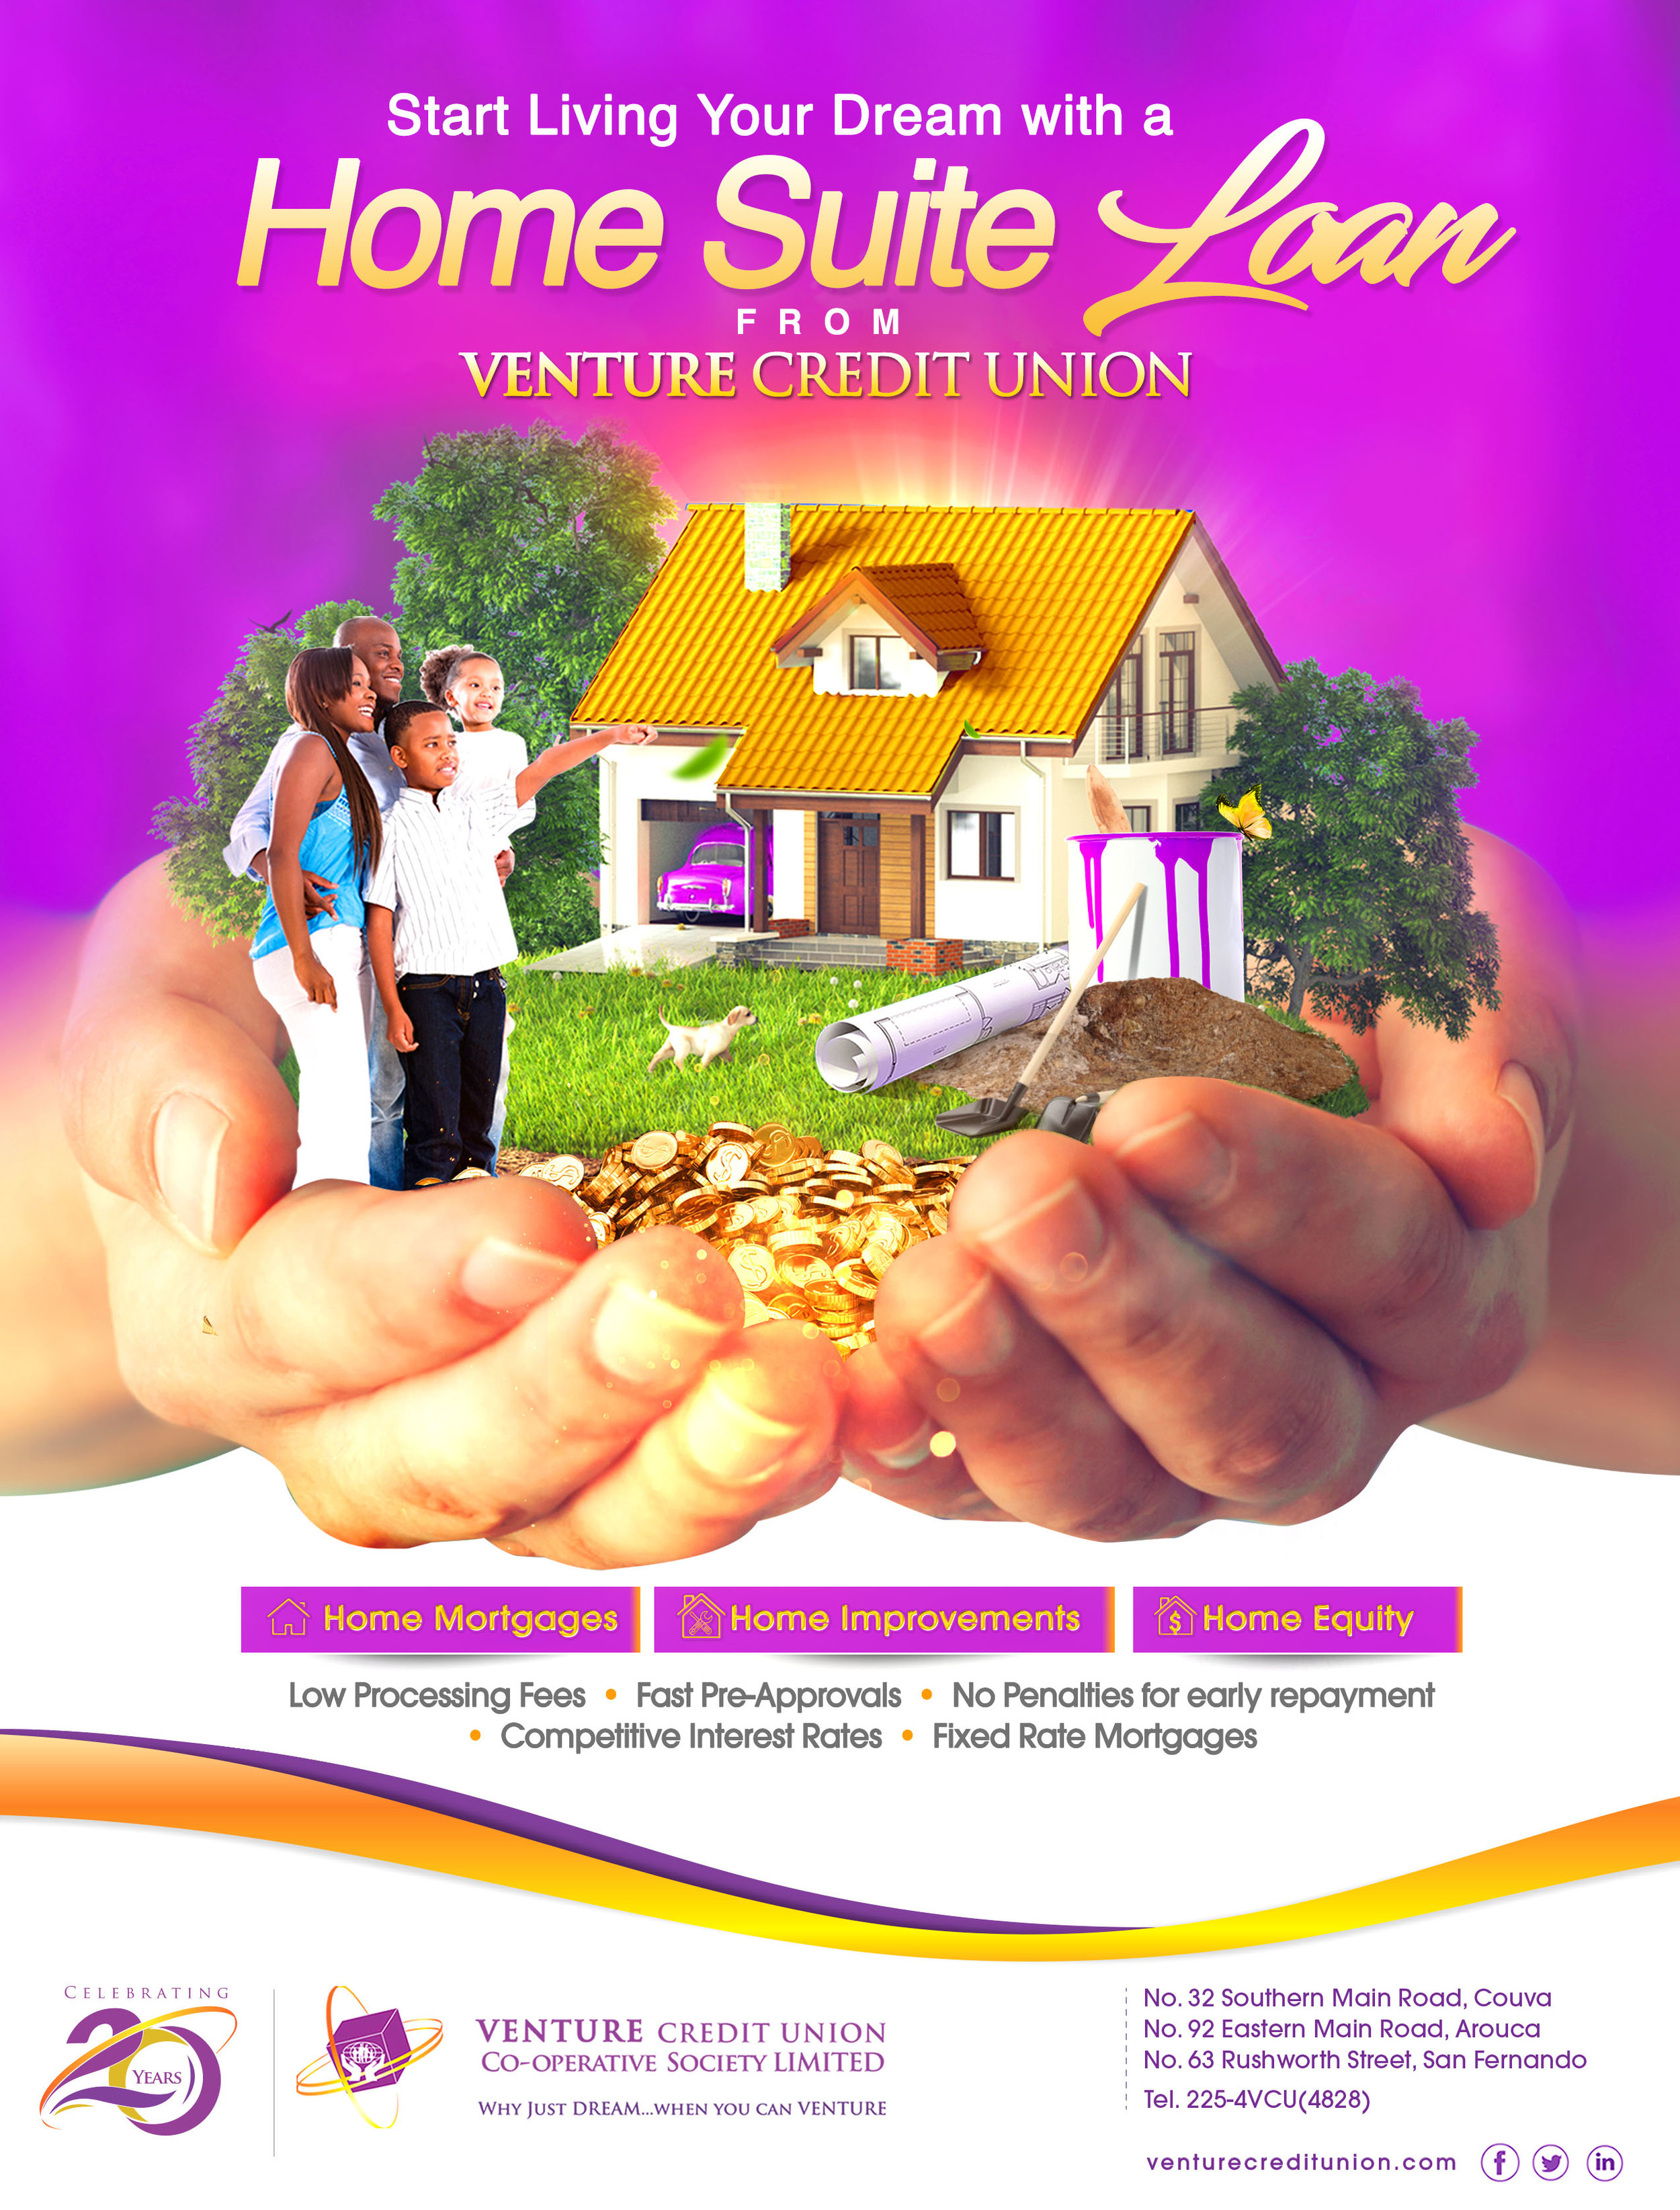 Home Suite Loan4.jpg